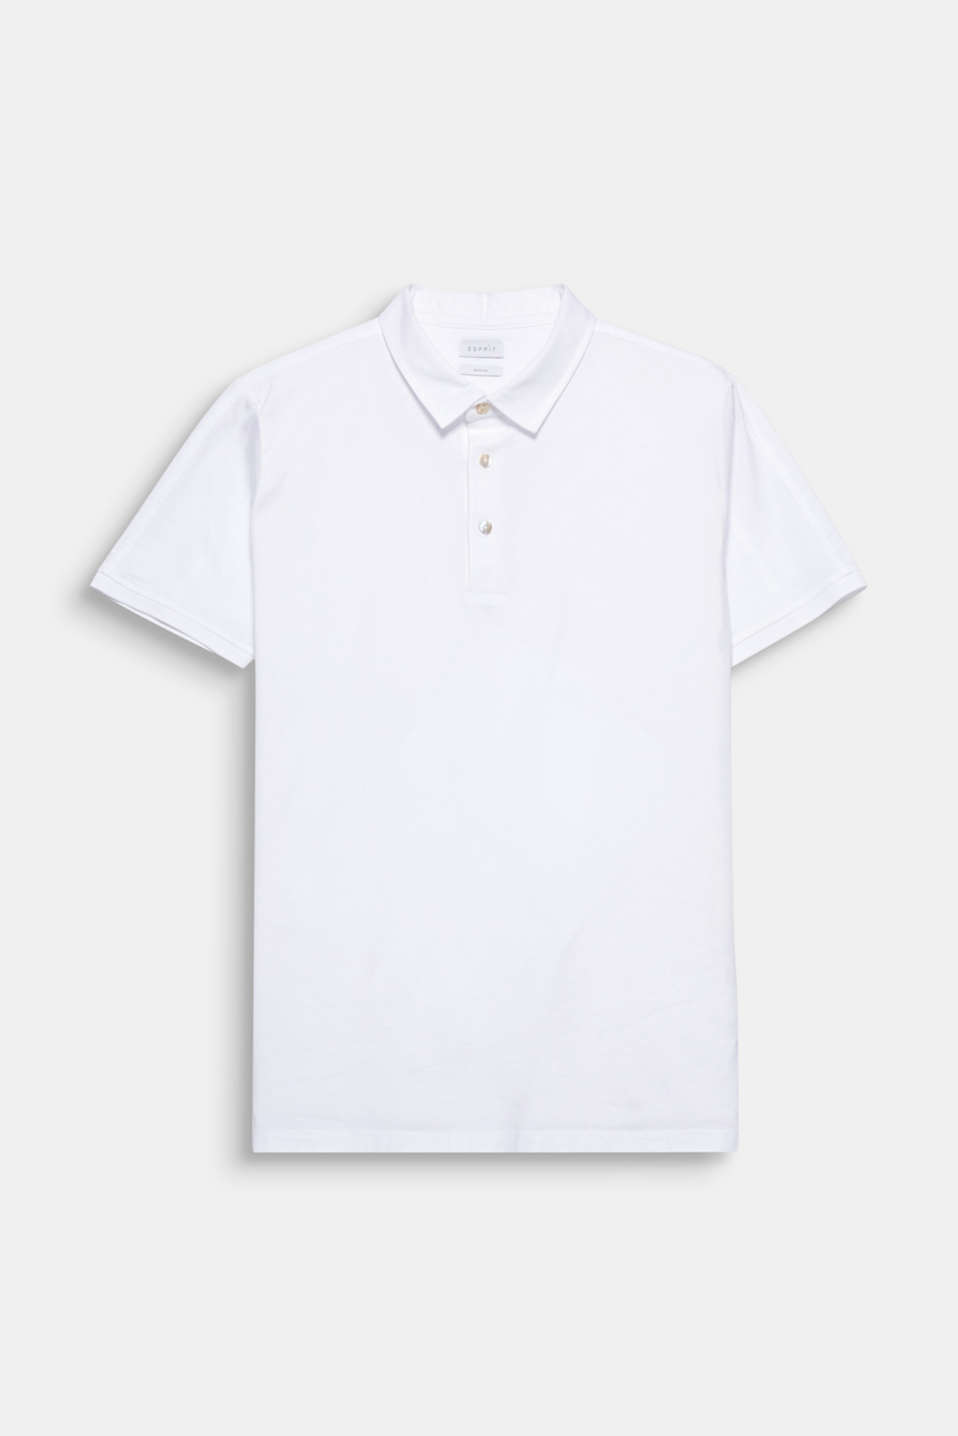 A fashion classic: the polo shirt.